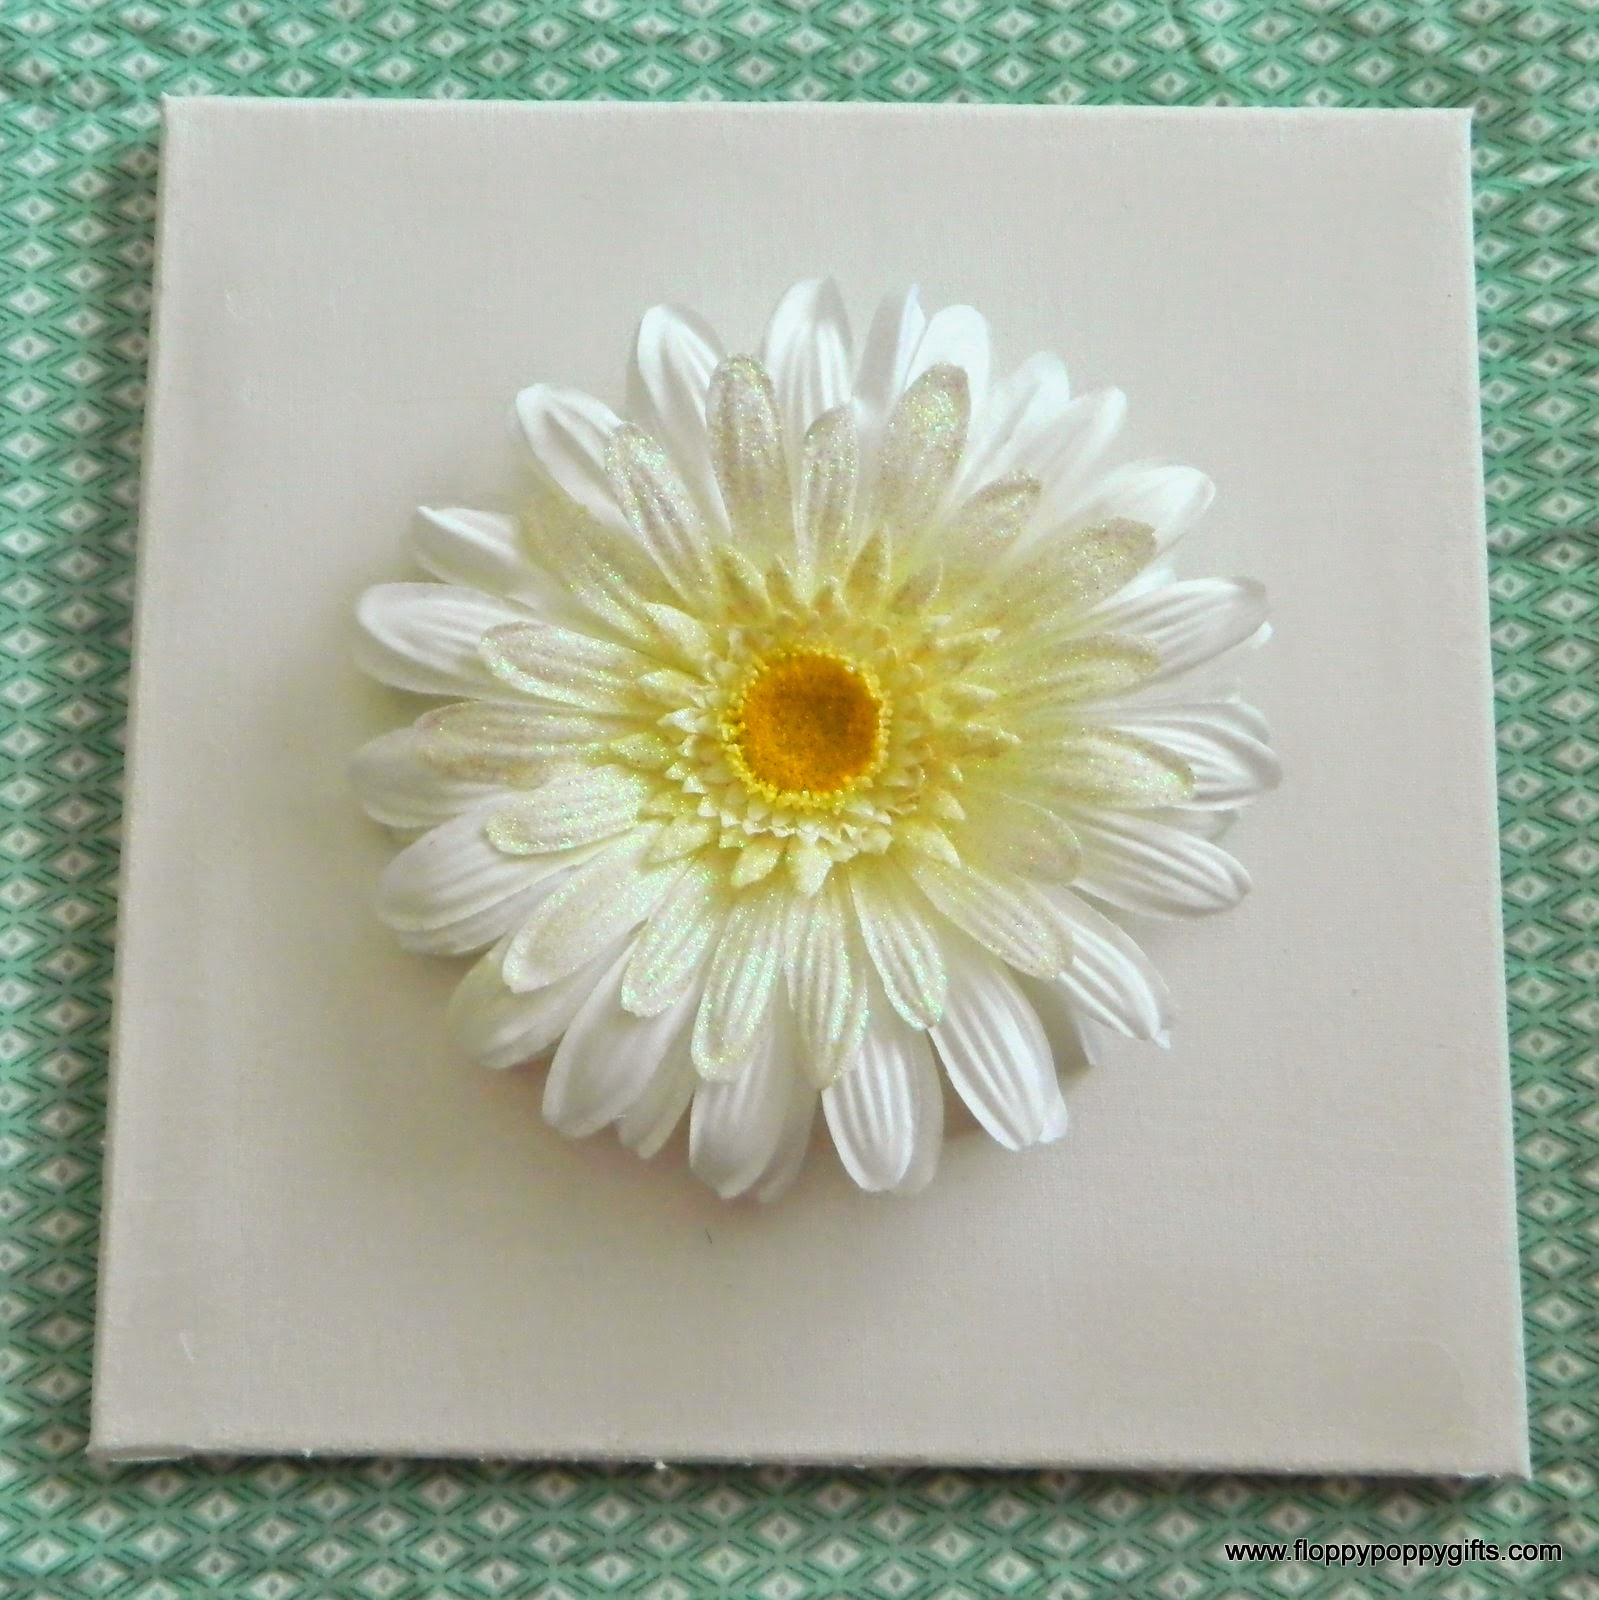 Floppy Poppy Gifts: DIY Yellow Daisy Wall Art Craft Tutorial